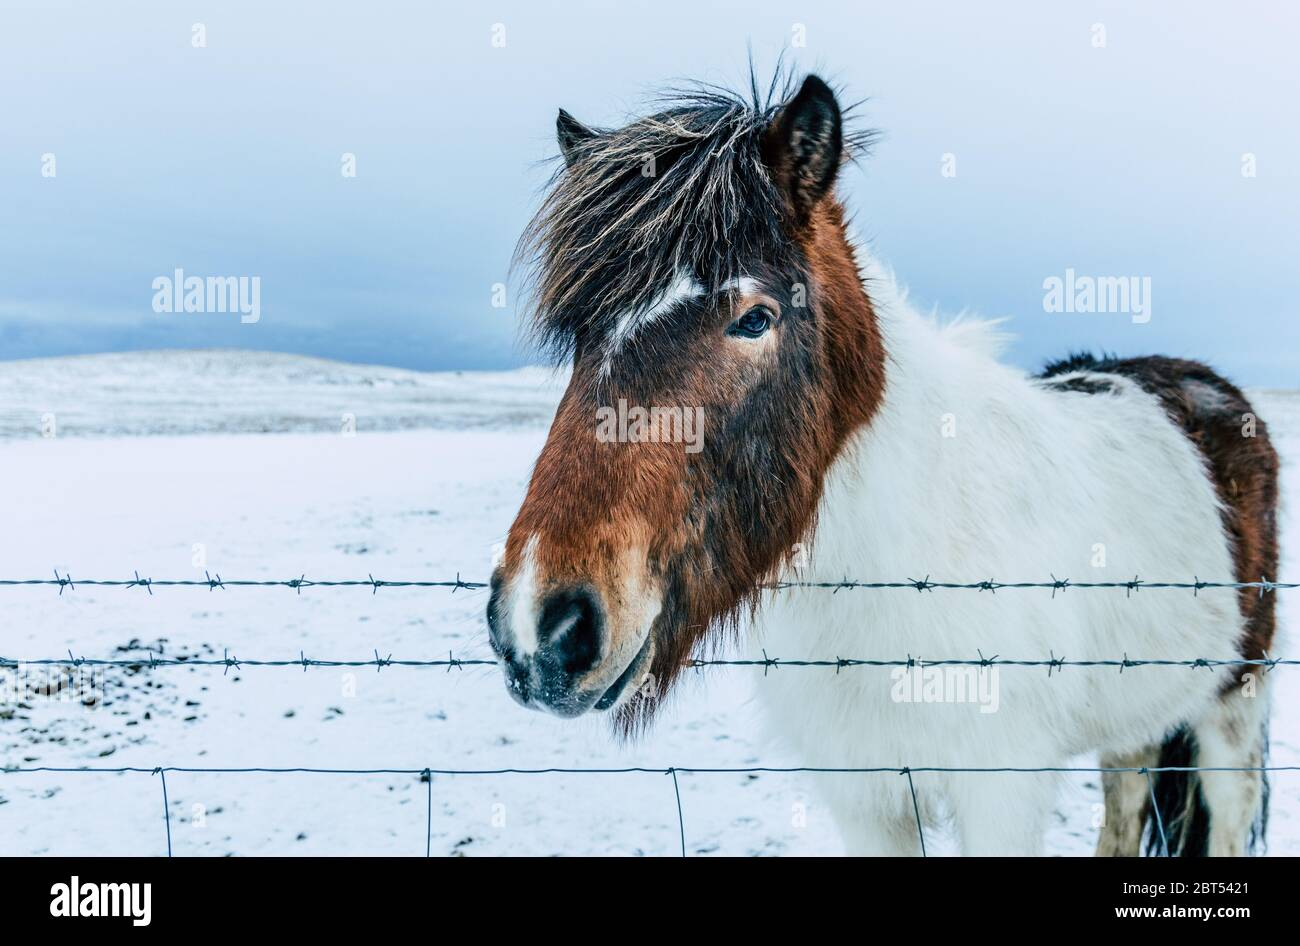 Icelandic horse standing by a fence, Iceland Stock Photo